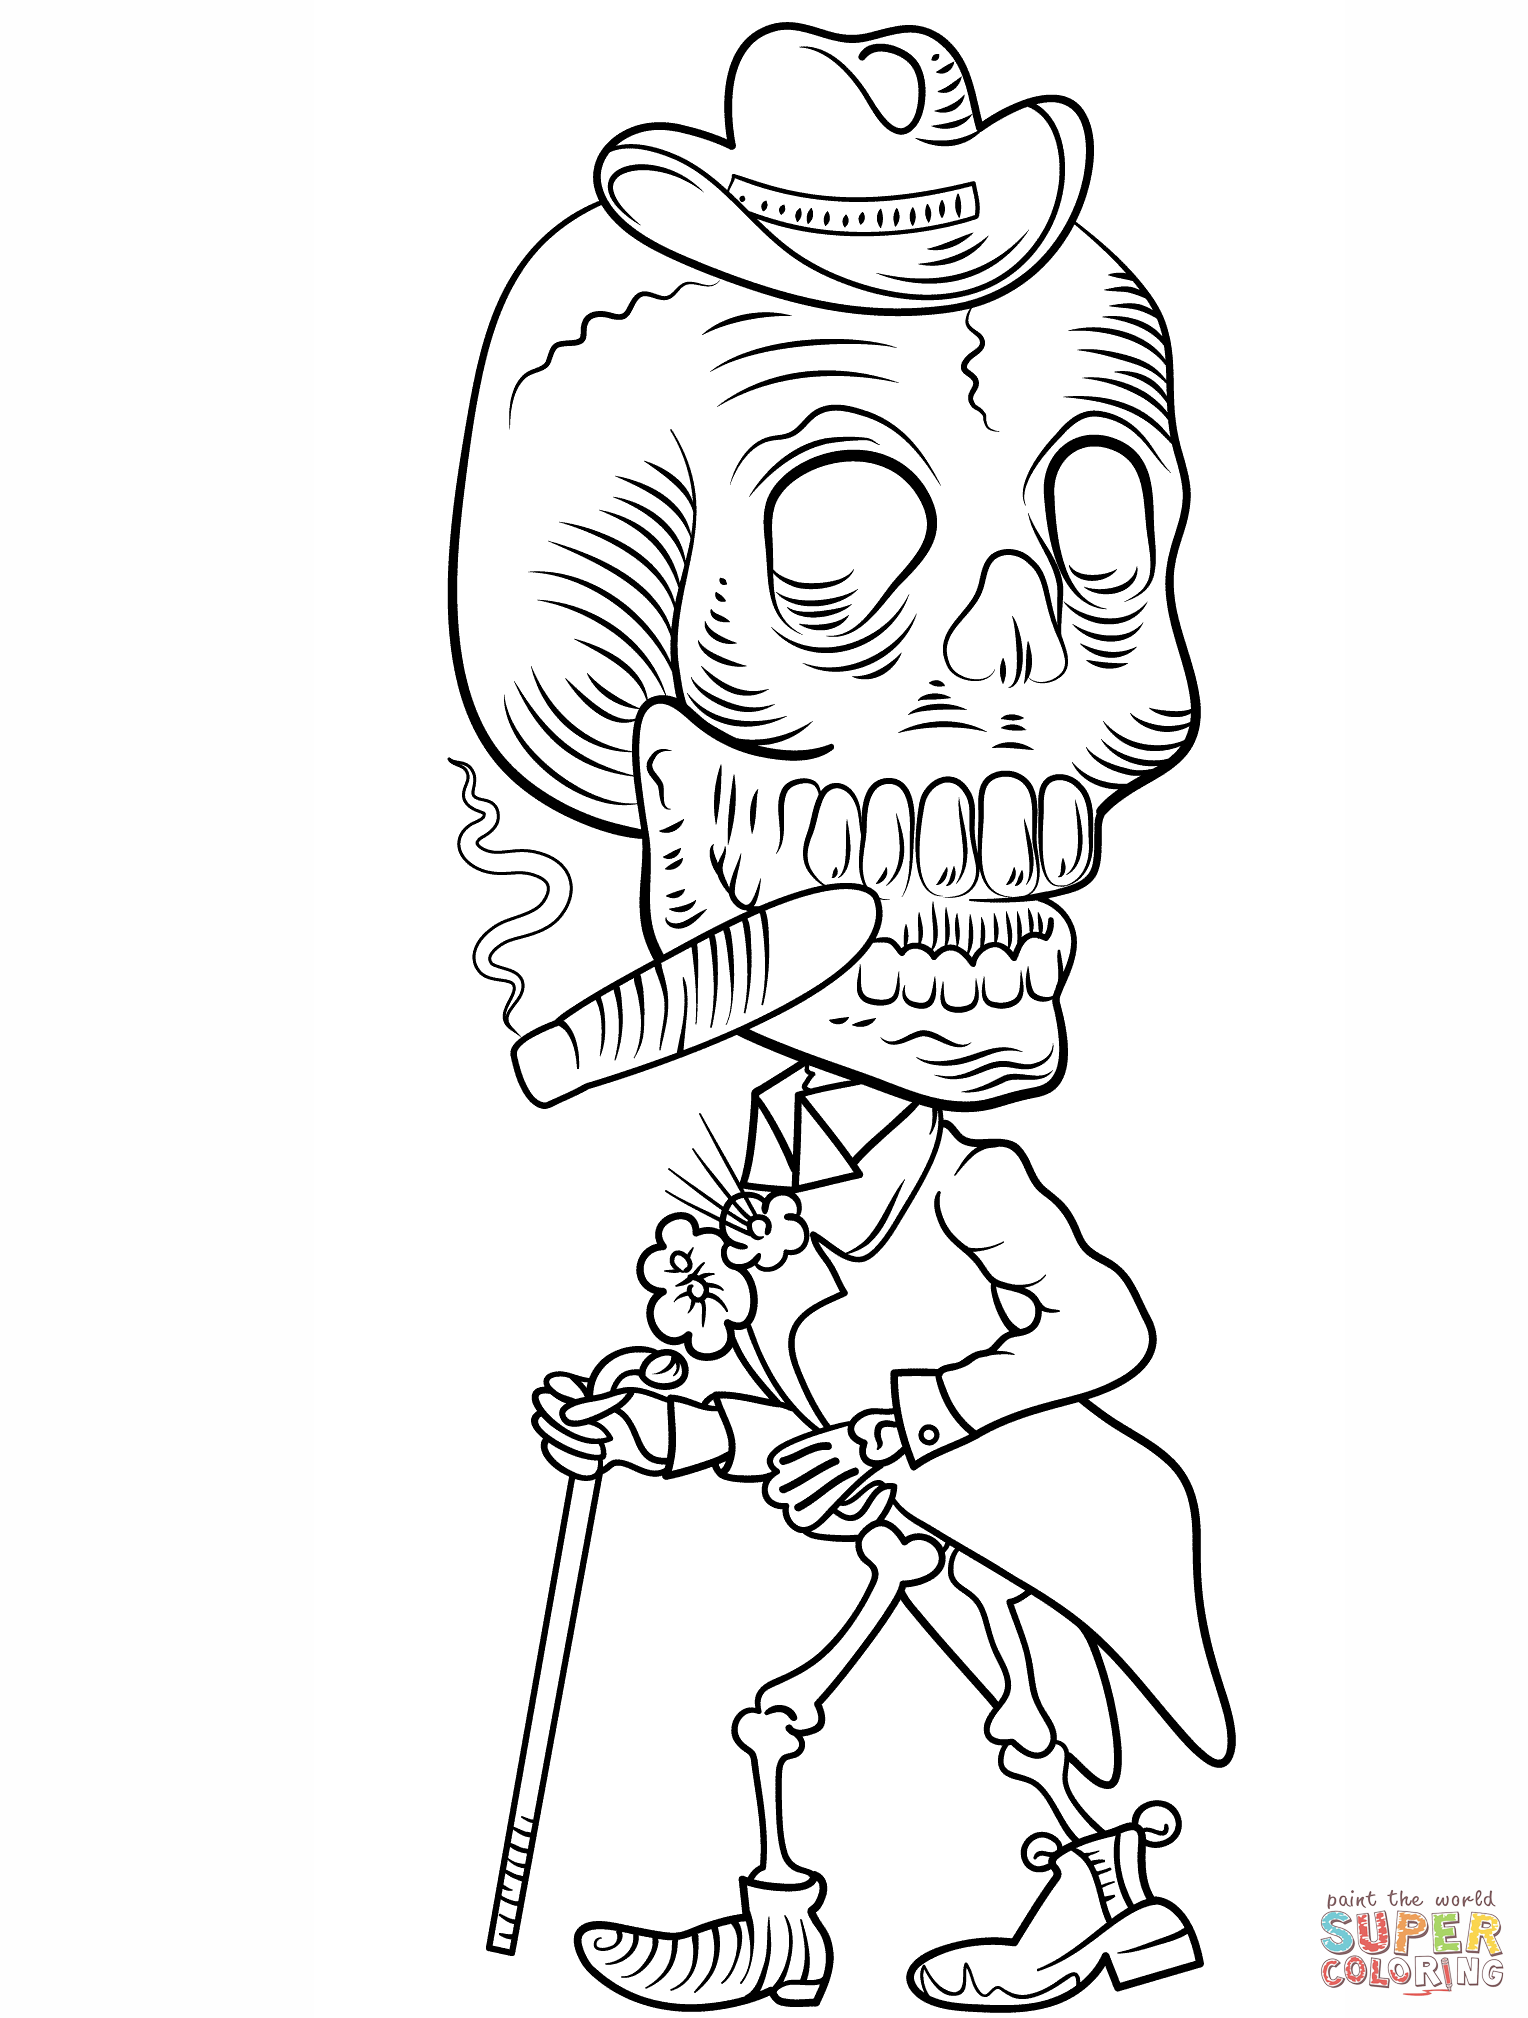 Skeleton Body Drawing At Getdrawings